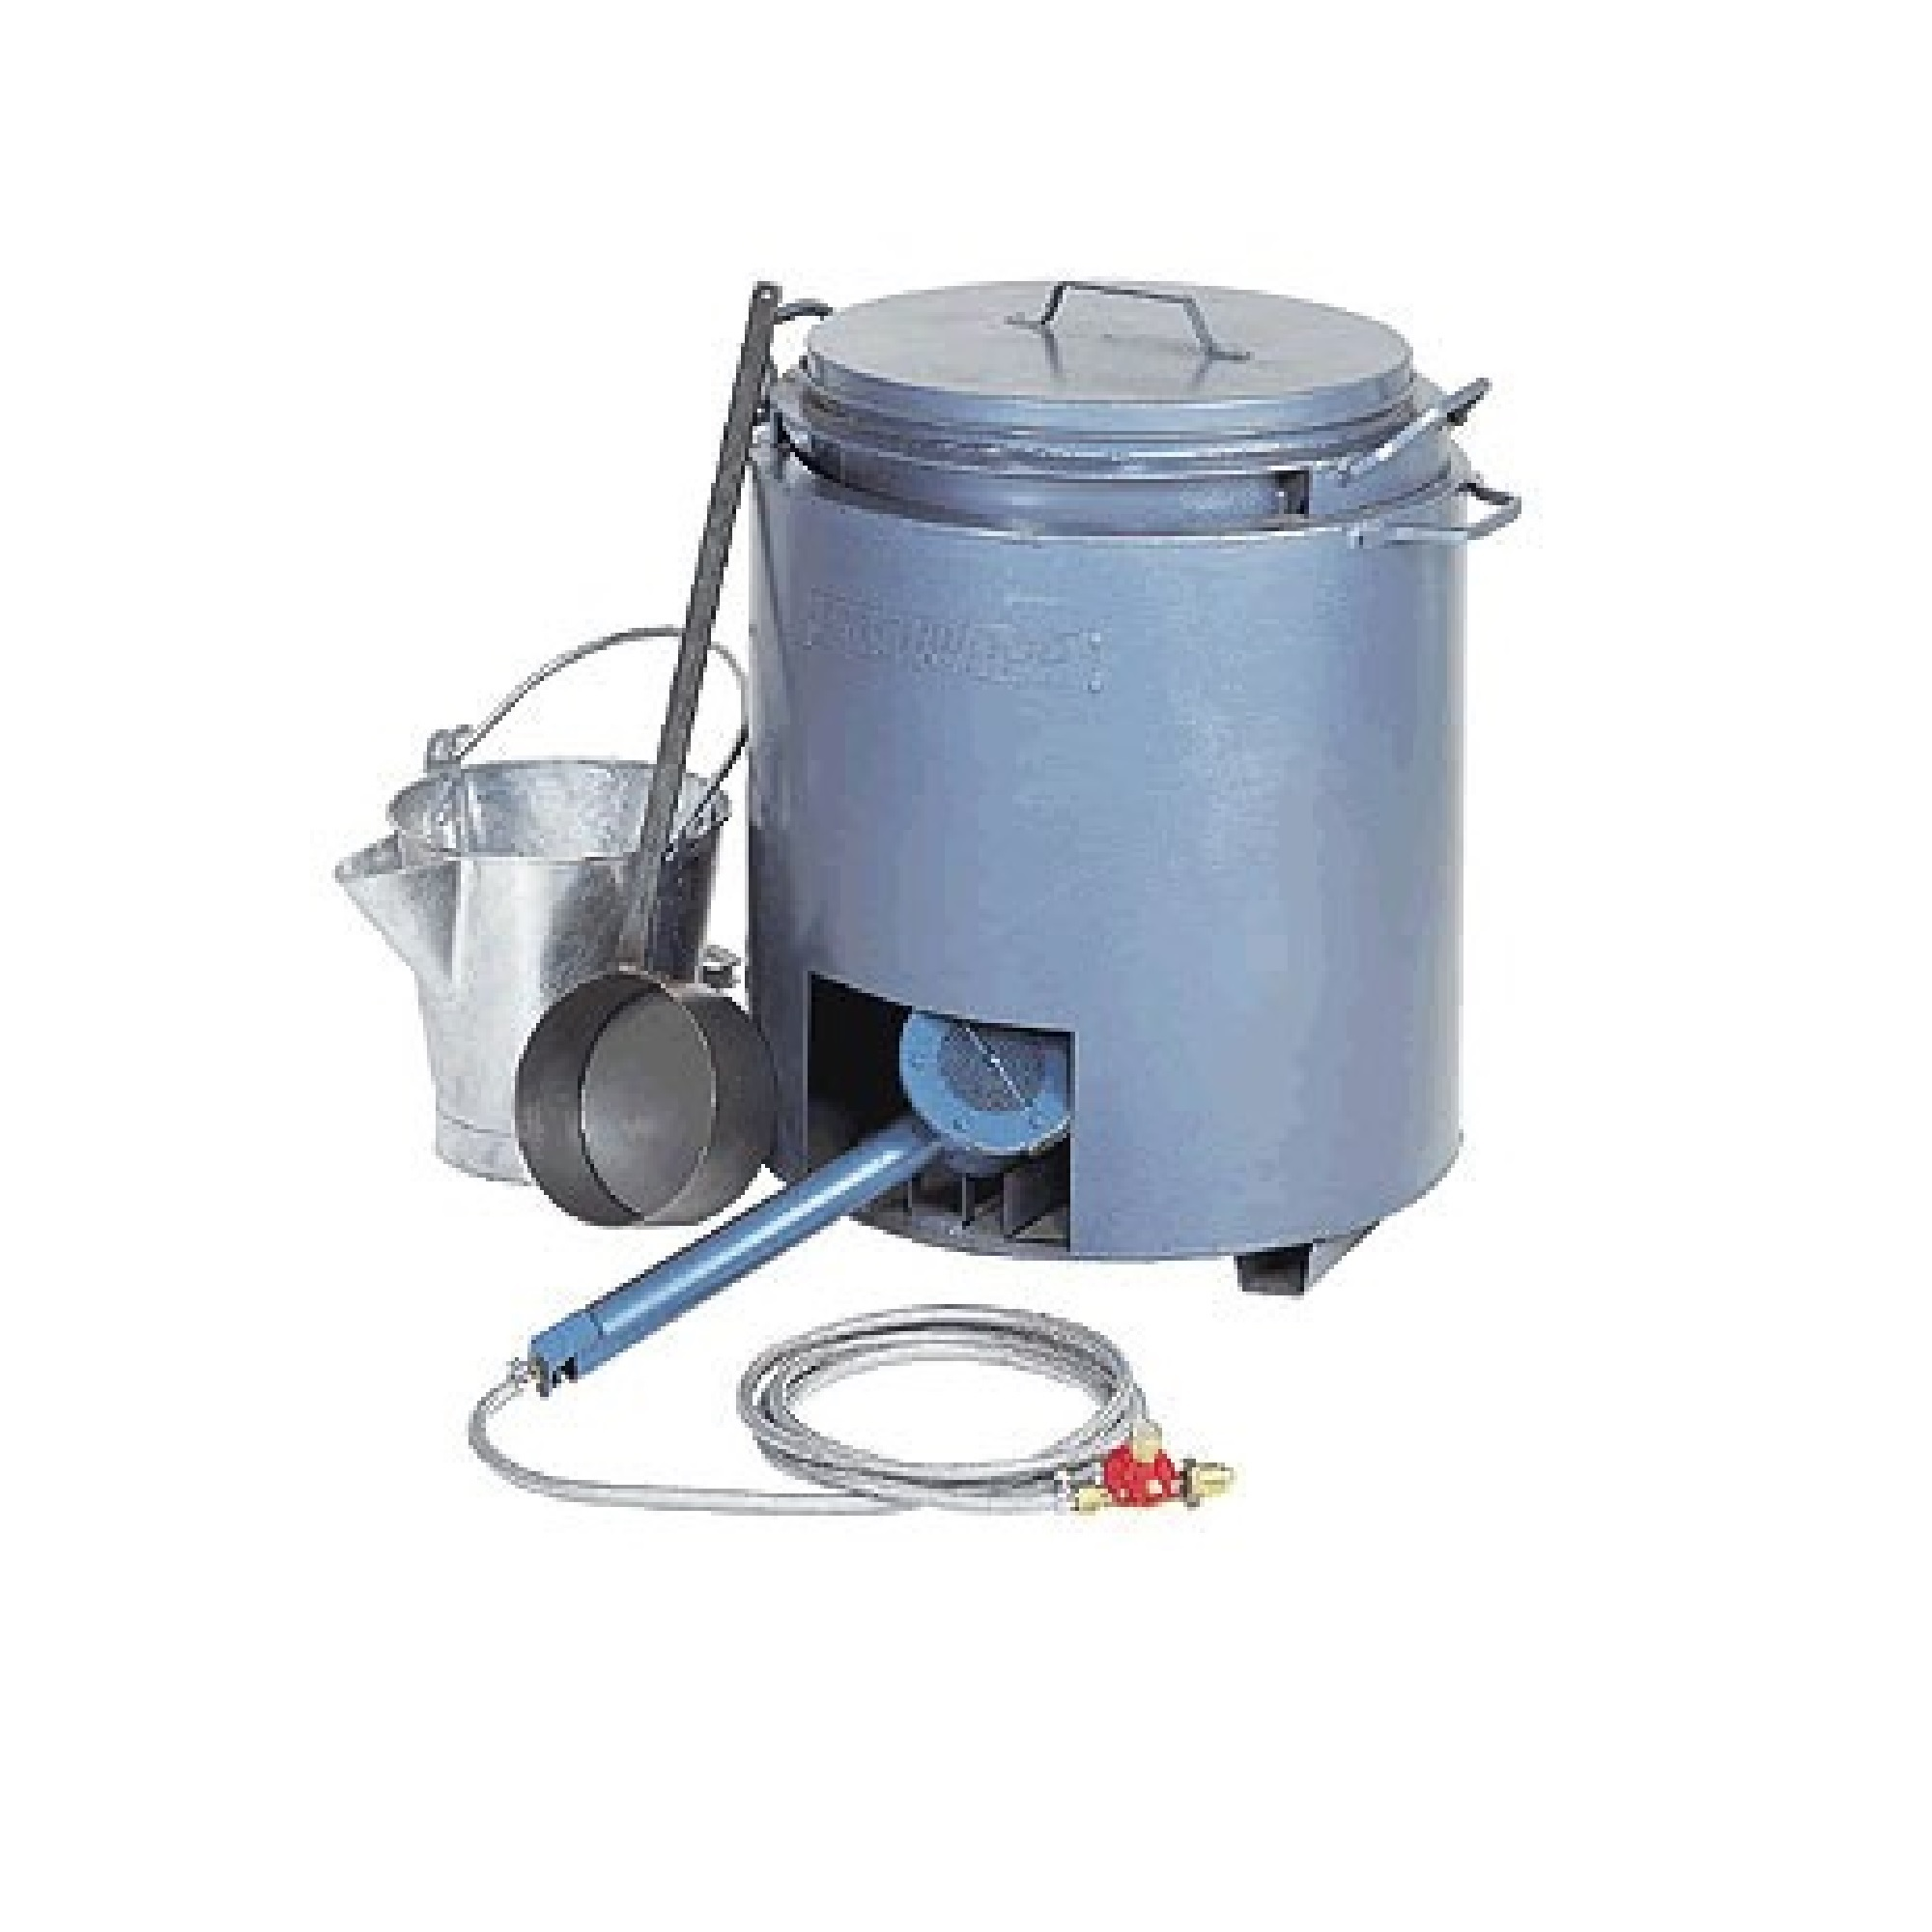 60 gallon tar boiler kit including tap, impact burner, regulator, armoured hose, long handle ladle and steel 'V' lip bucket